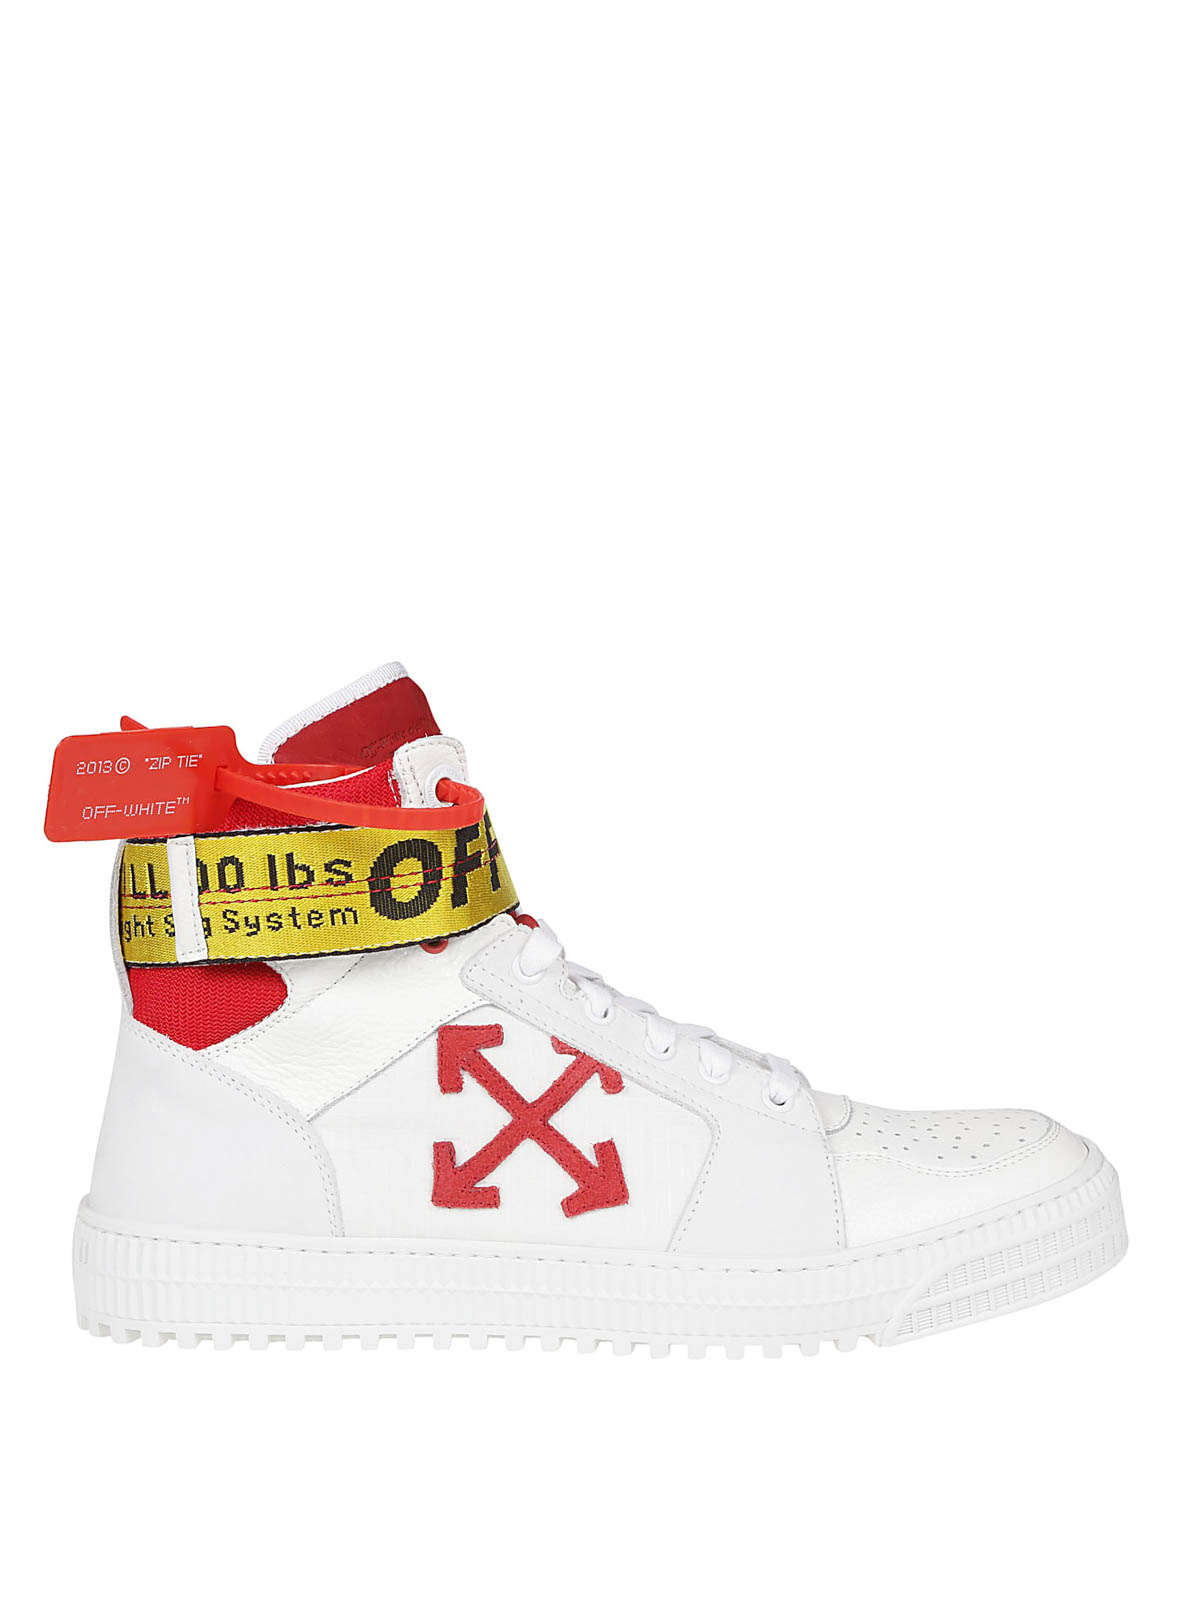 sneakers - trainers - OMIA102R198000010120